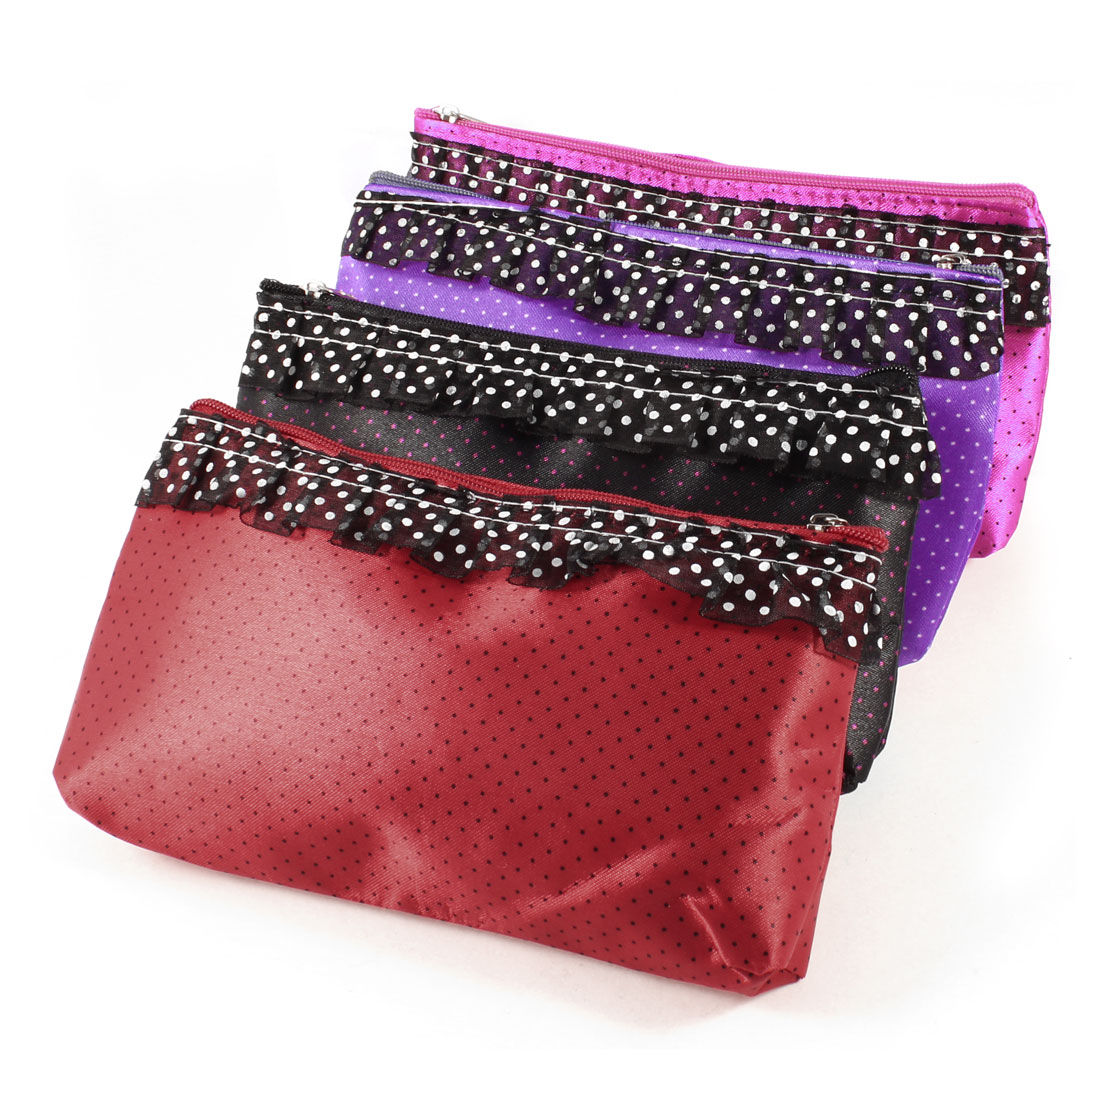 4 Pcs Dots Printed Mirror Lipstick Makeup Cosmetic Bag Assorted Color for Lady